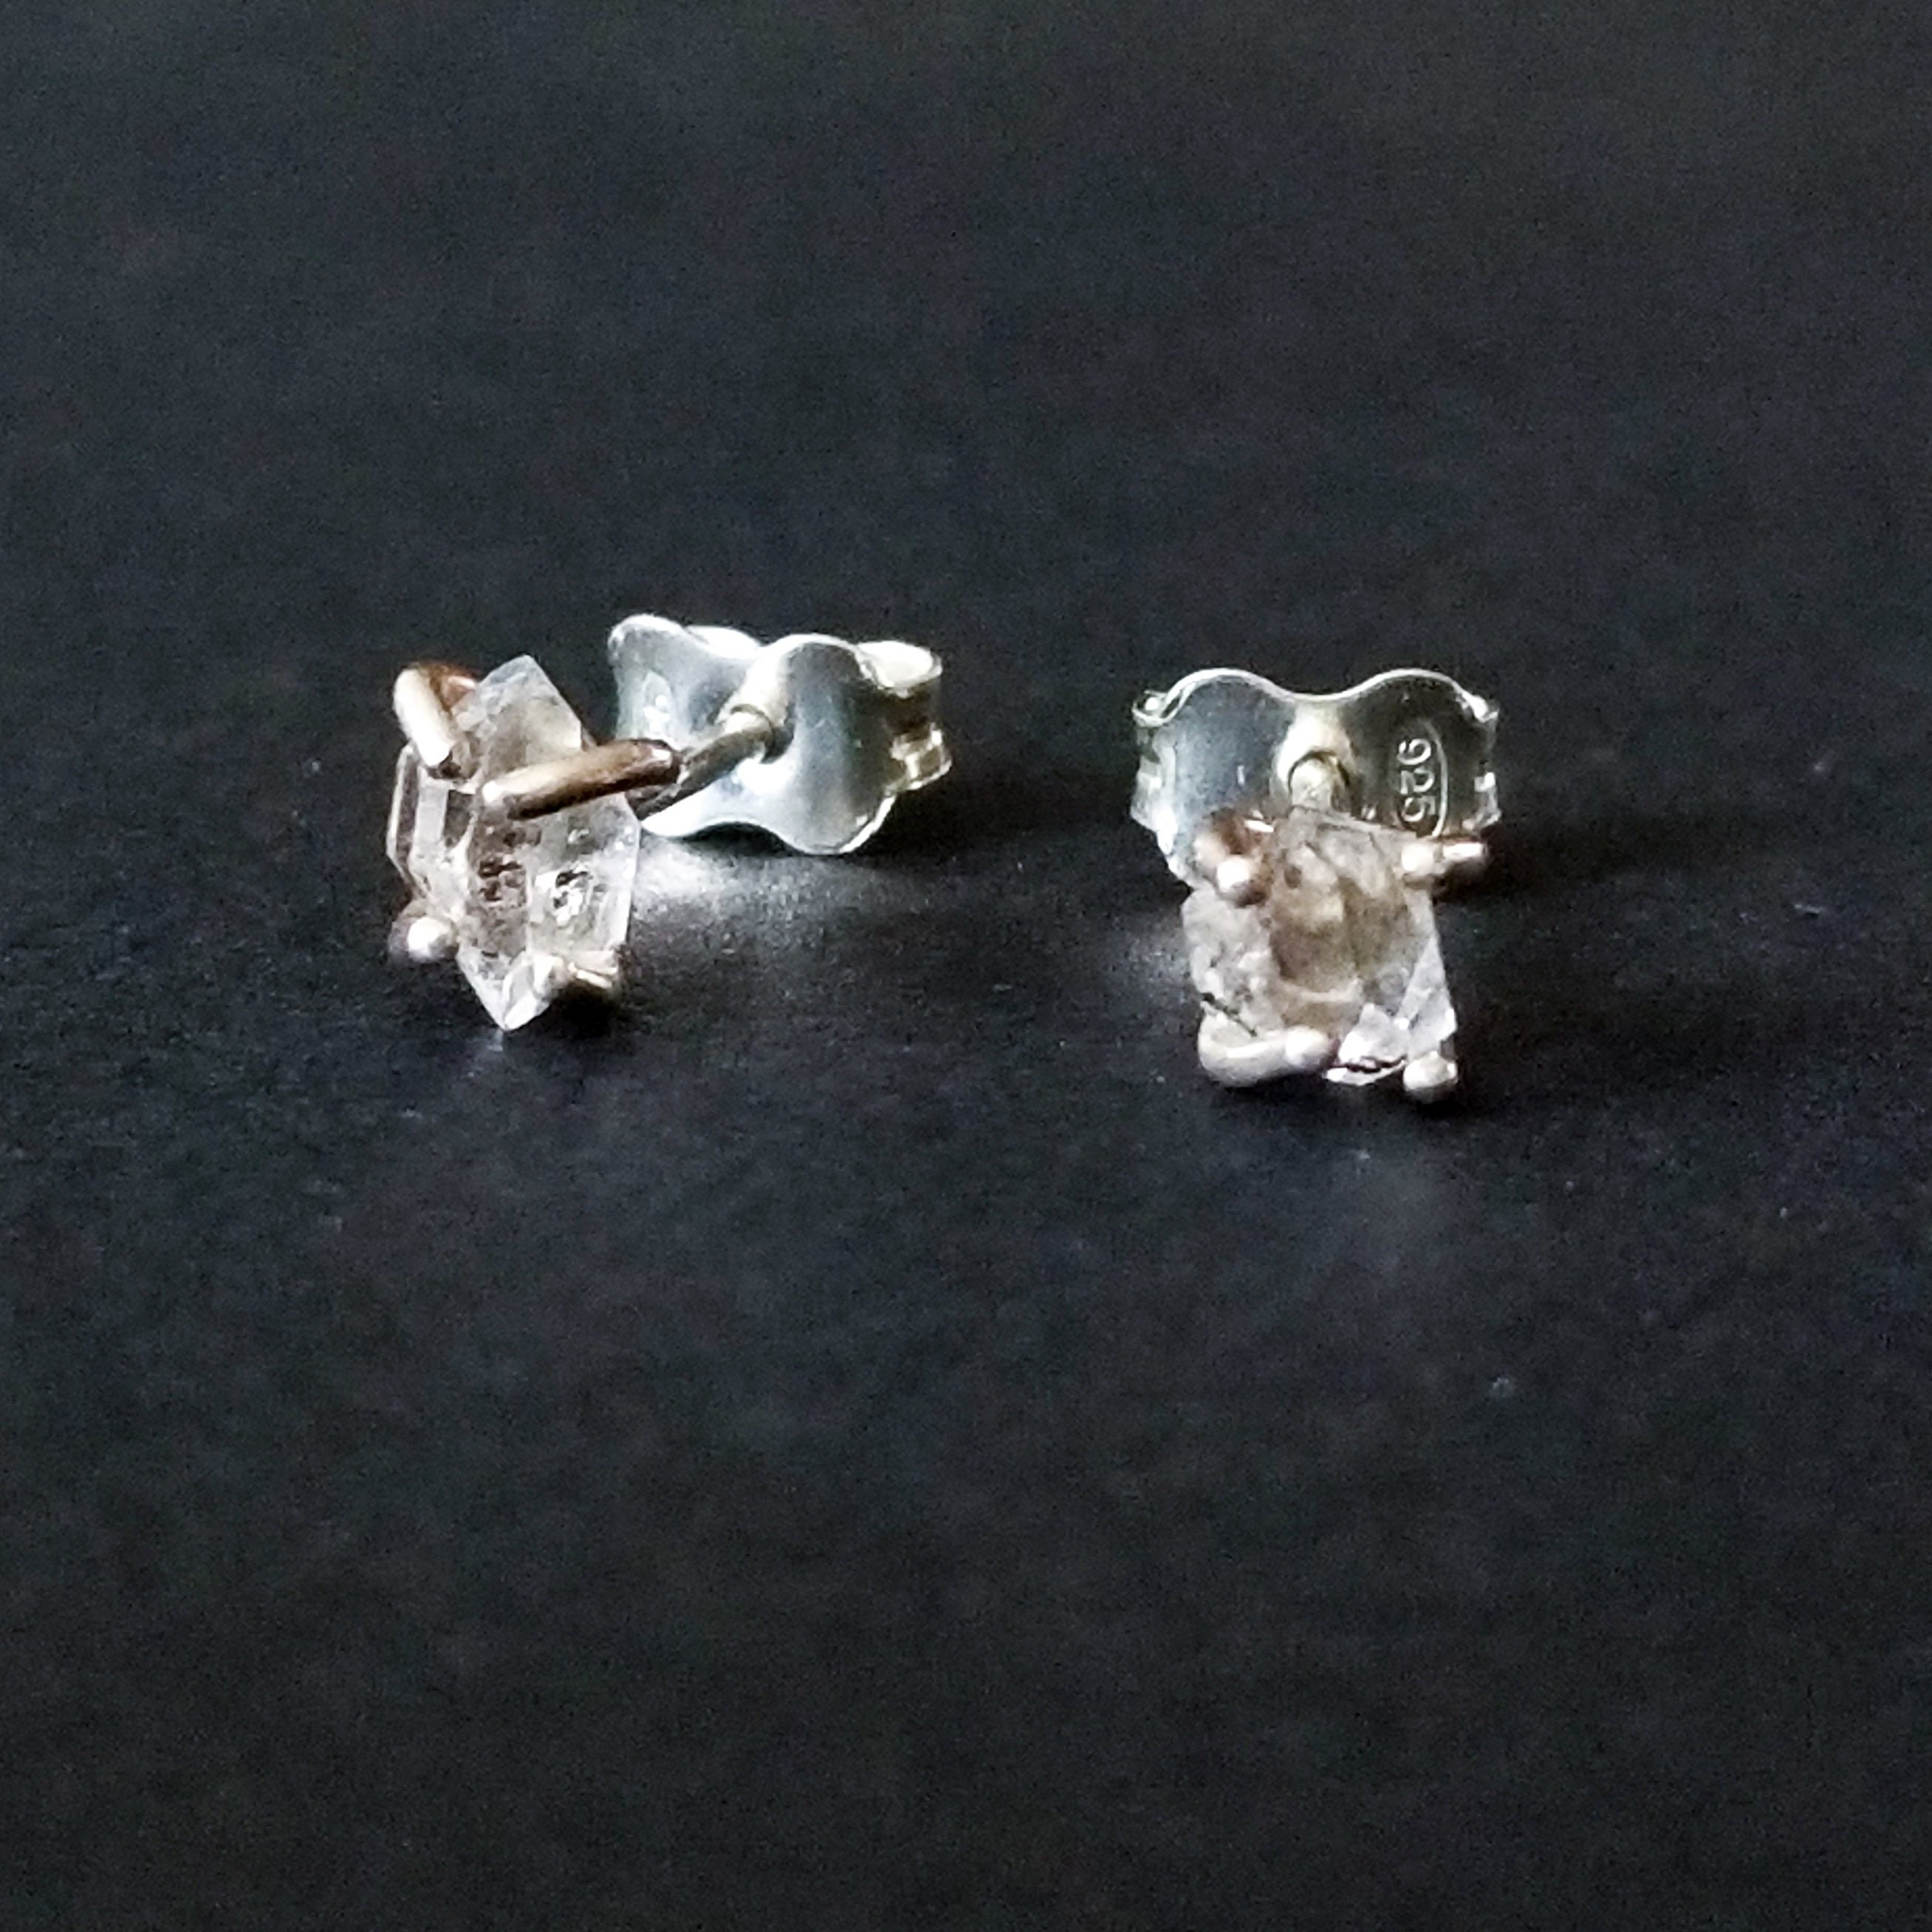 Inchoo Bijoux Holiday Gifts Mom Herkimer Diamond Earrings